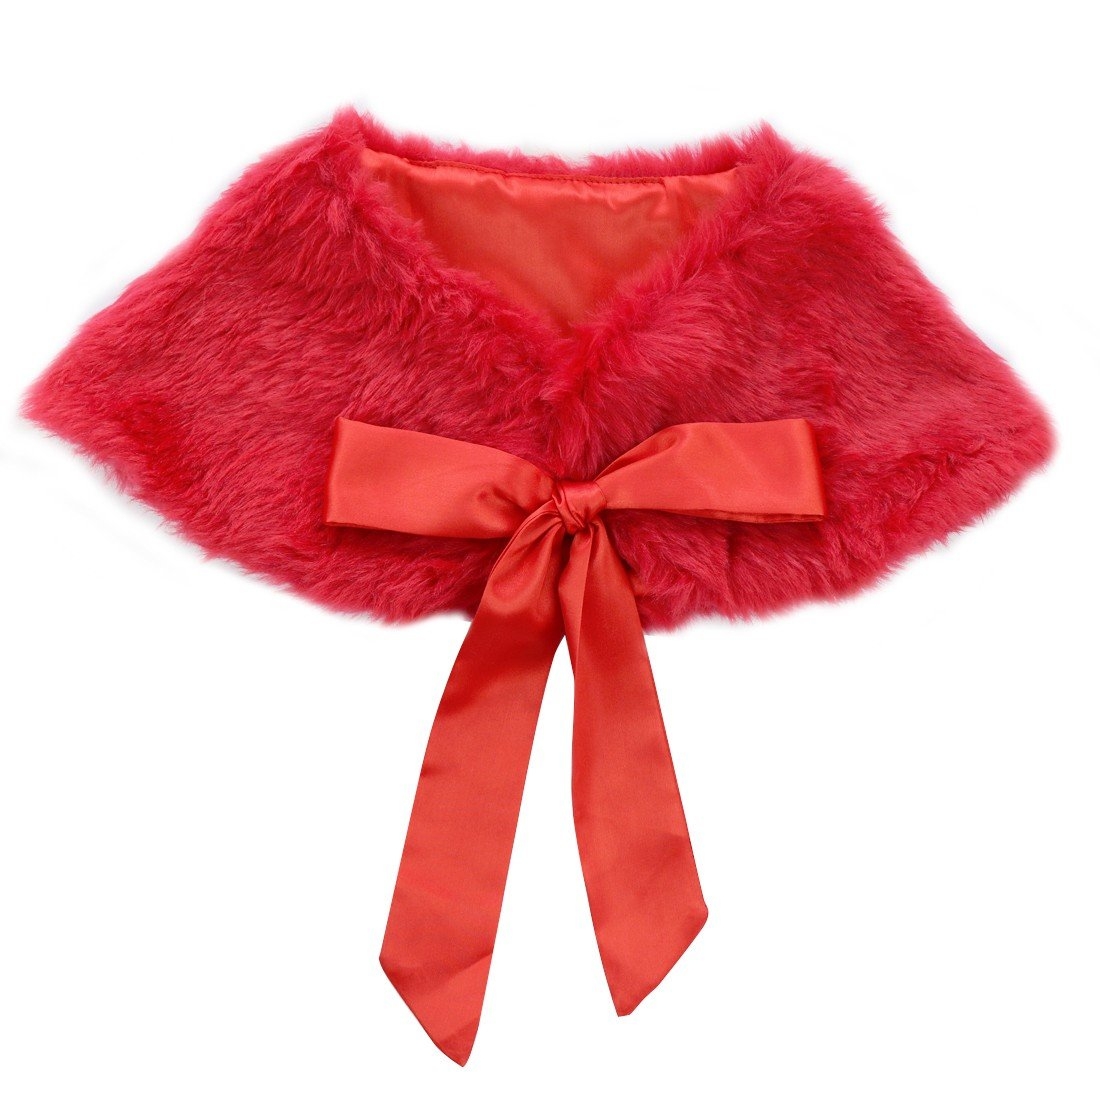 dPois Girls' Faux Fur Flower Dress Bolero Shrug Juniors Bridesmaid Wrap Shawl Bowknot Jacket Cloak